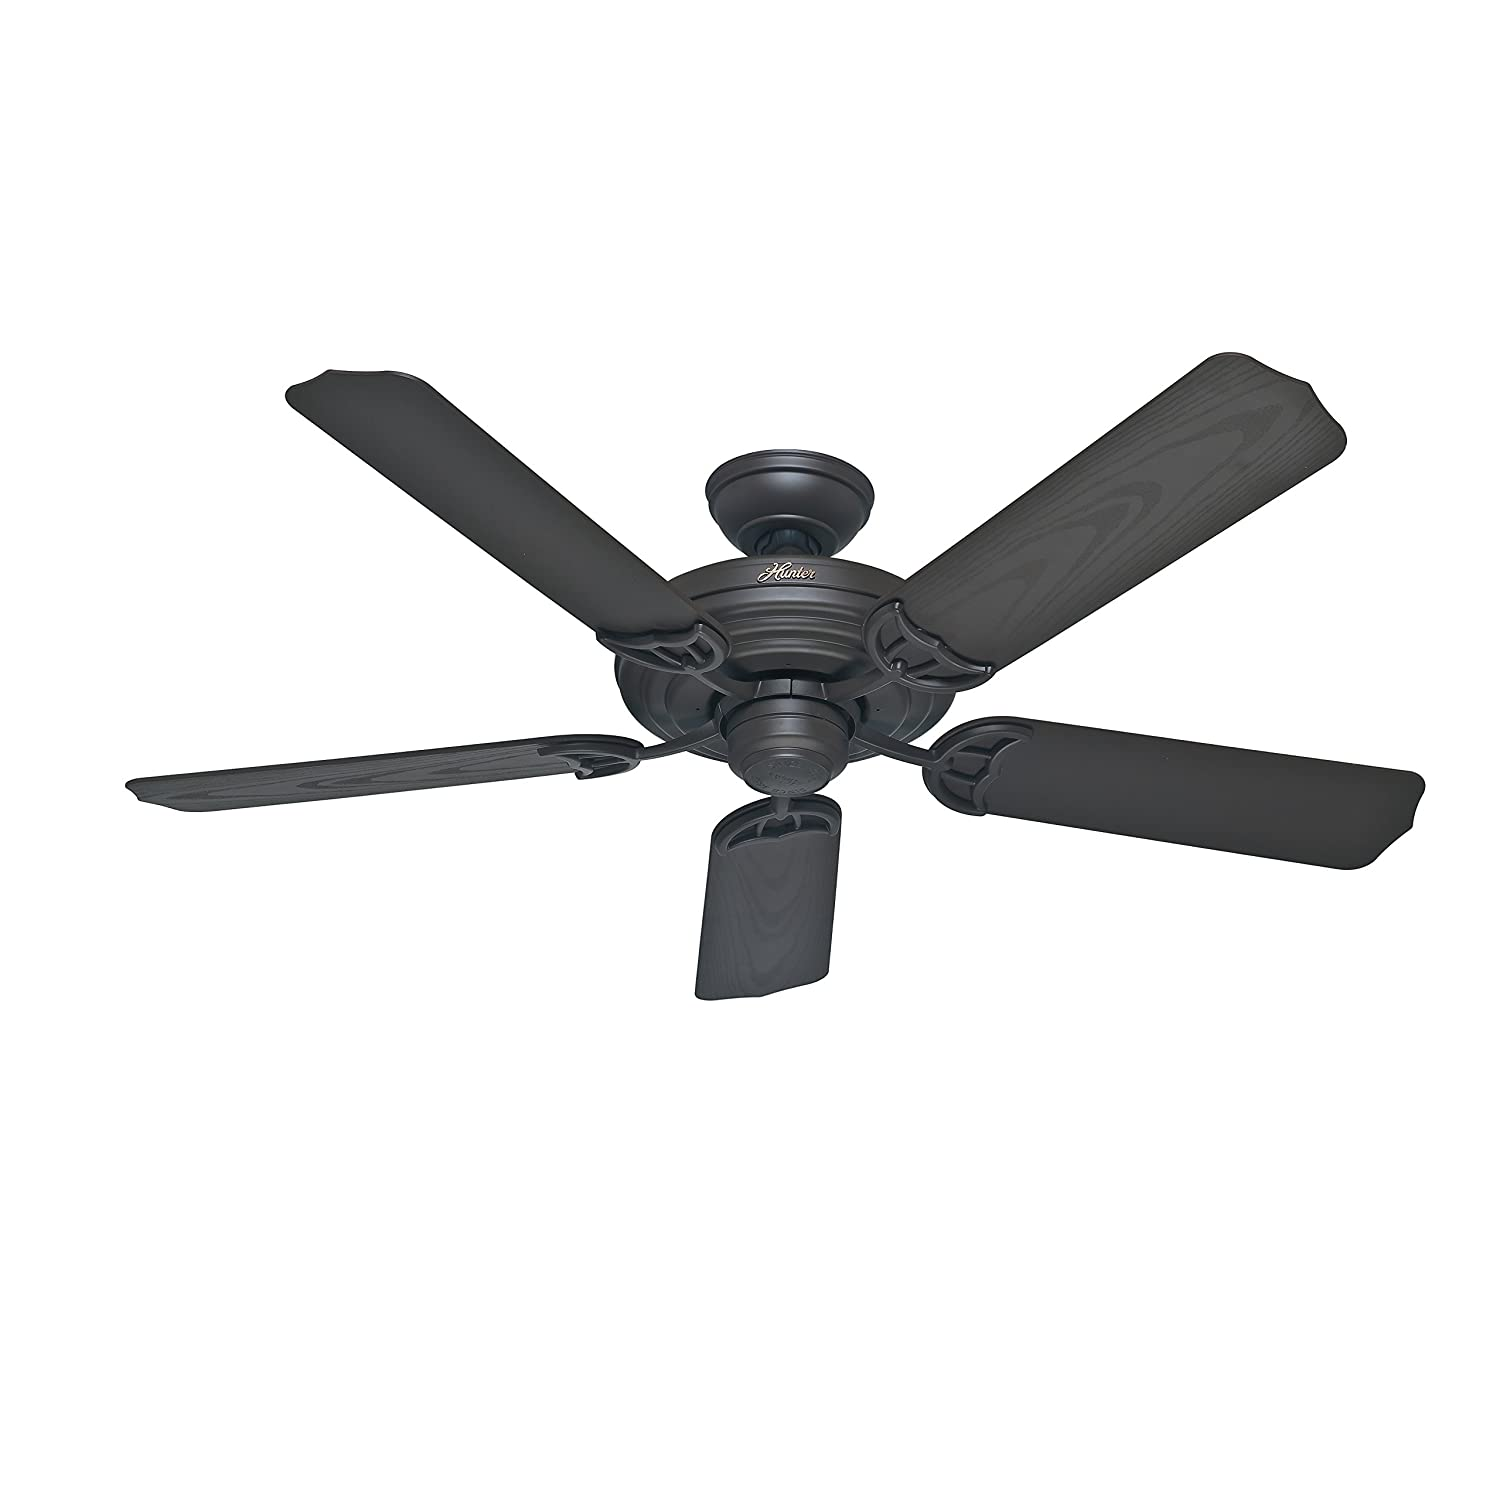 Hunter Fan 52 inch Outdoor Ceiling Fan in New Bronze with Stainless Steel Hardware to Resist Rust, 5 Blade Renewed